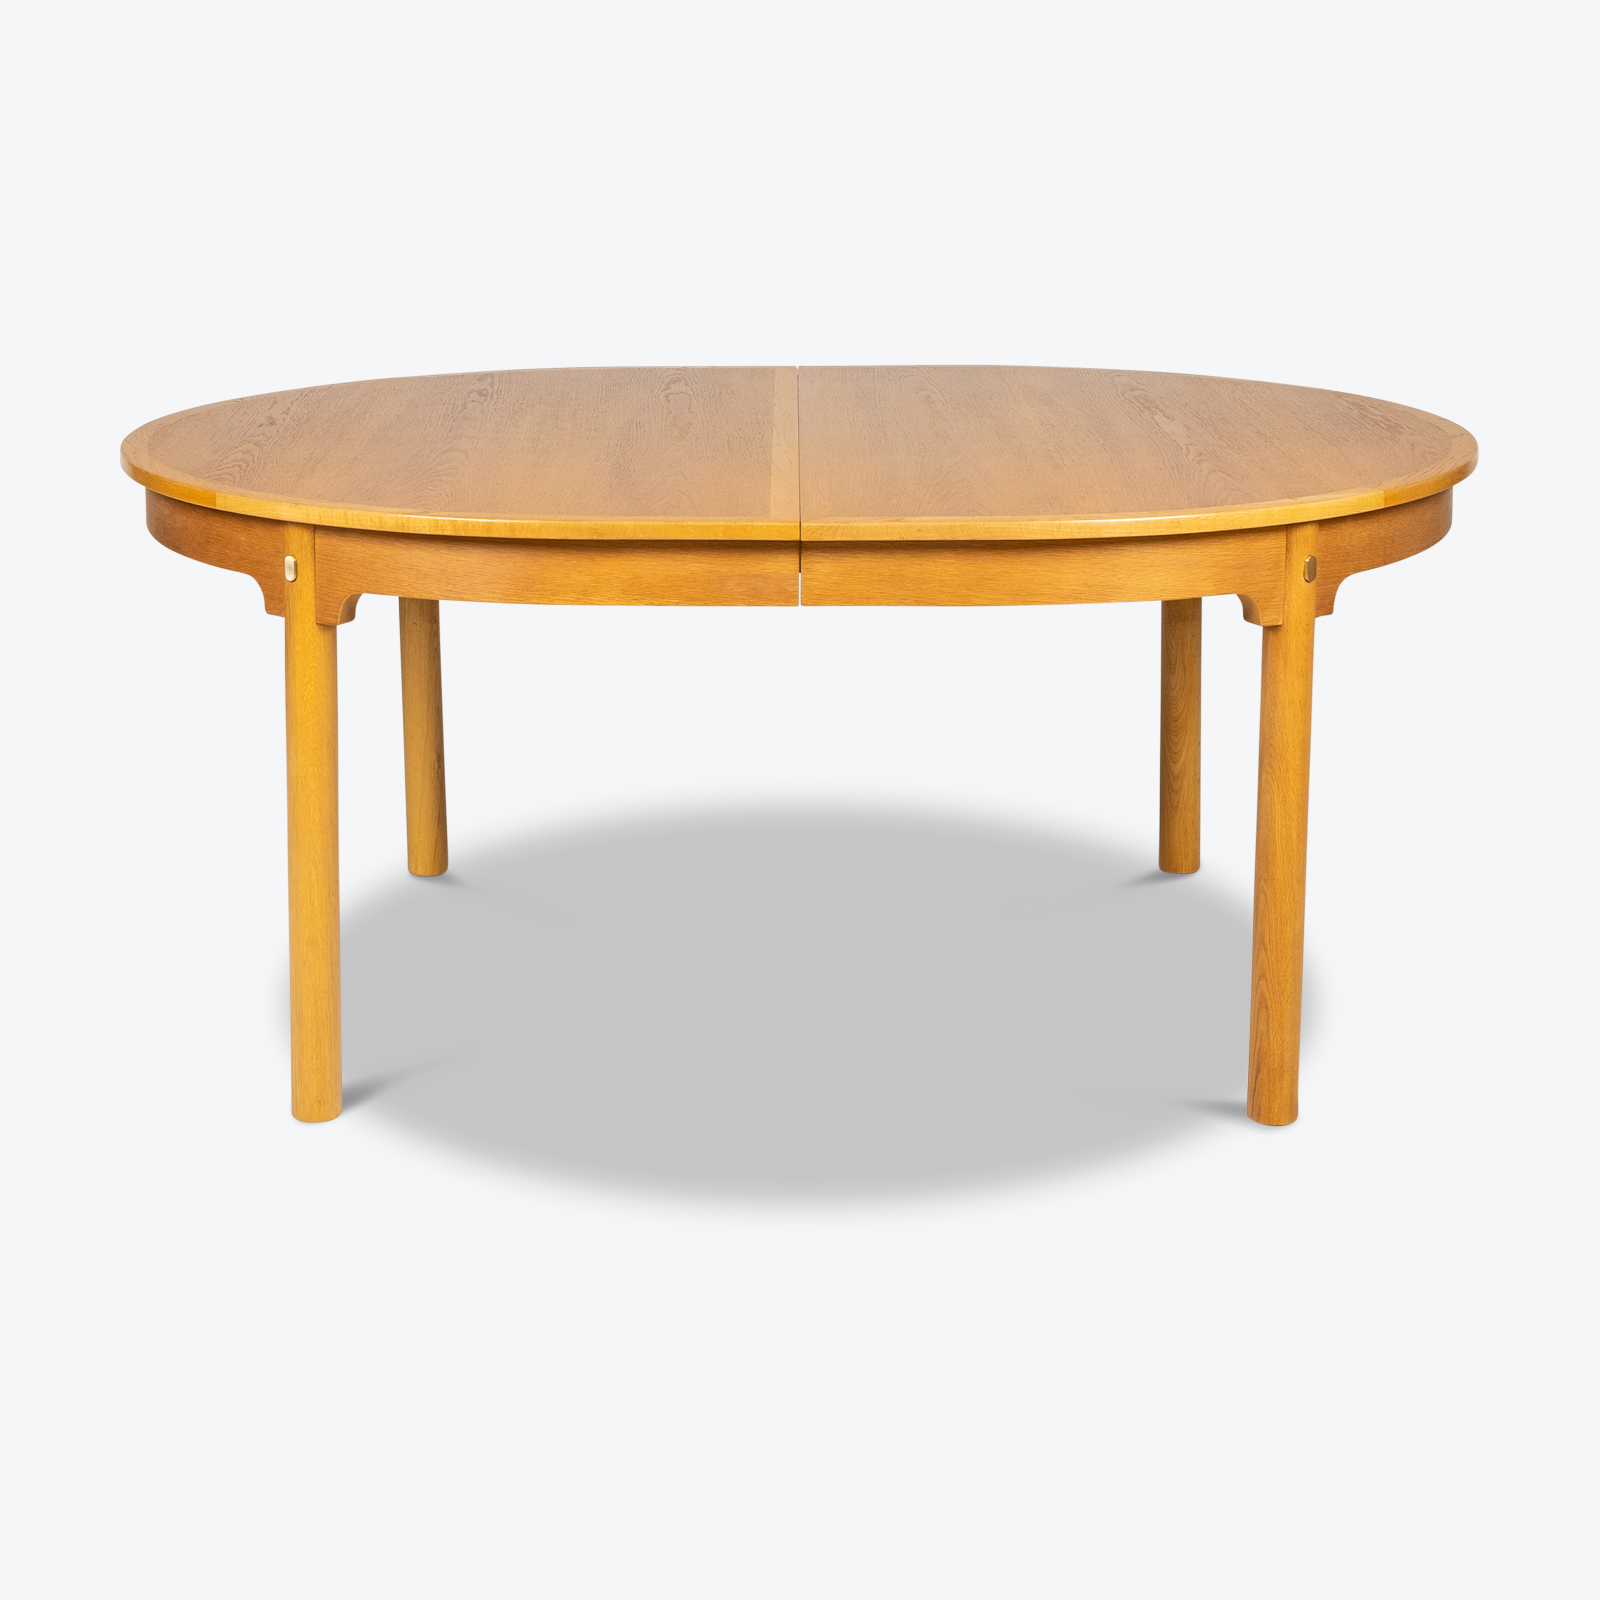 Oresund Round Dining Table By Borge Mogensen For Karl Andersson & Soner In Oak With One Extension Leaf, 1960s, Denmark Hero